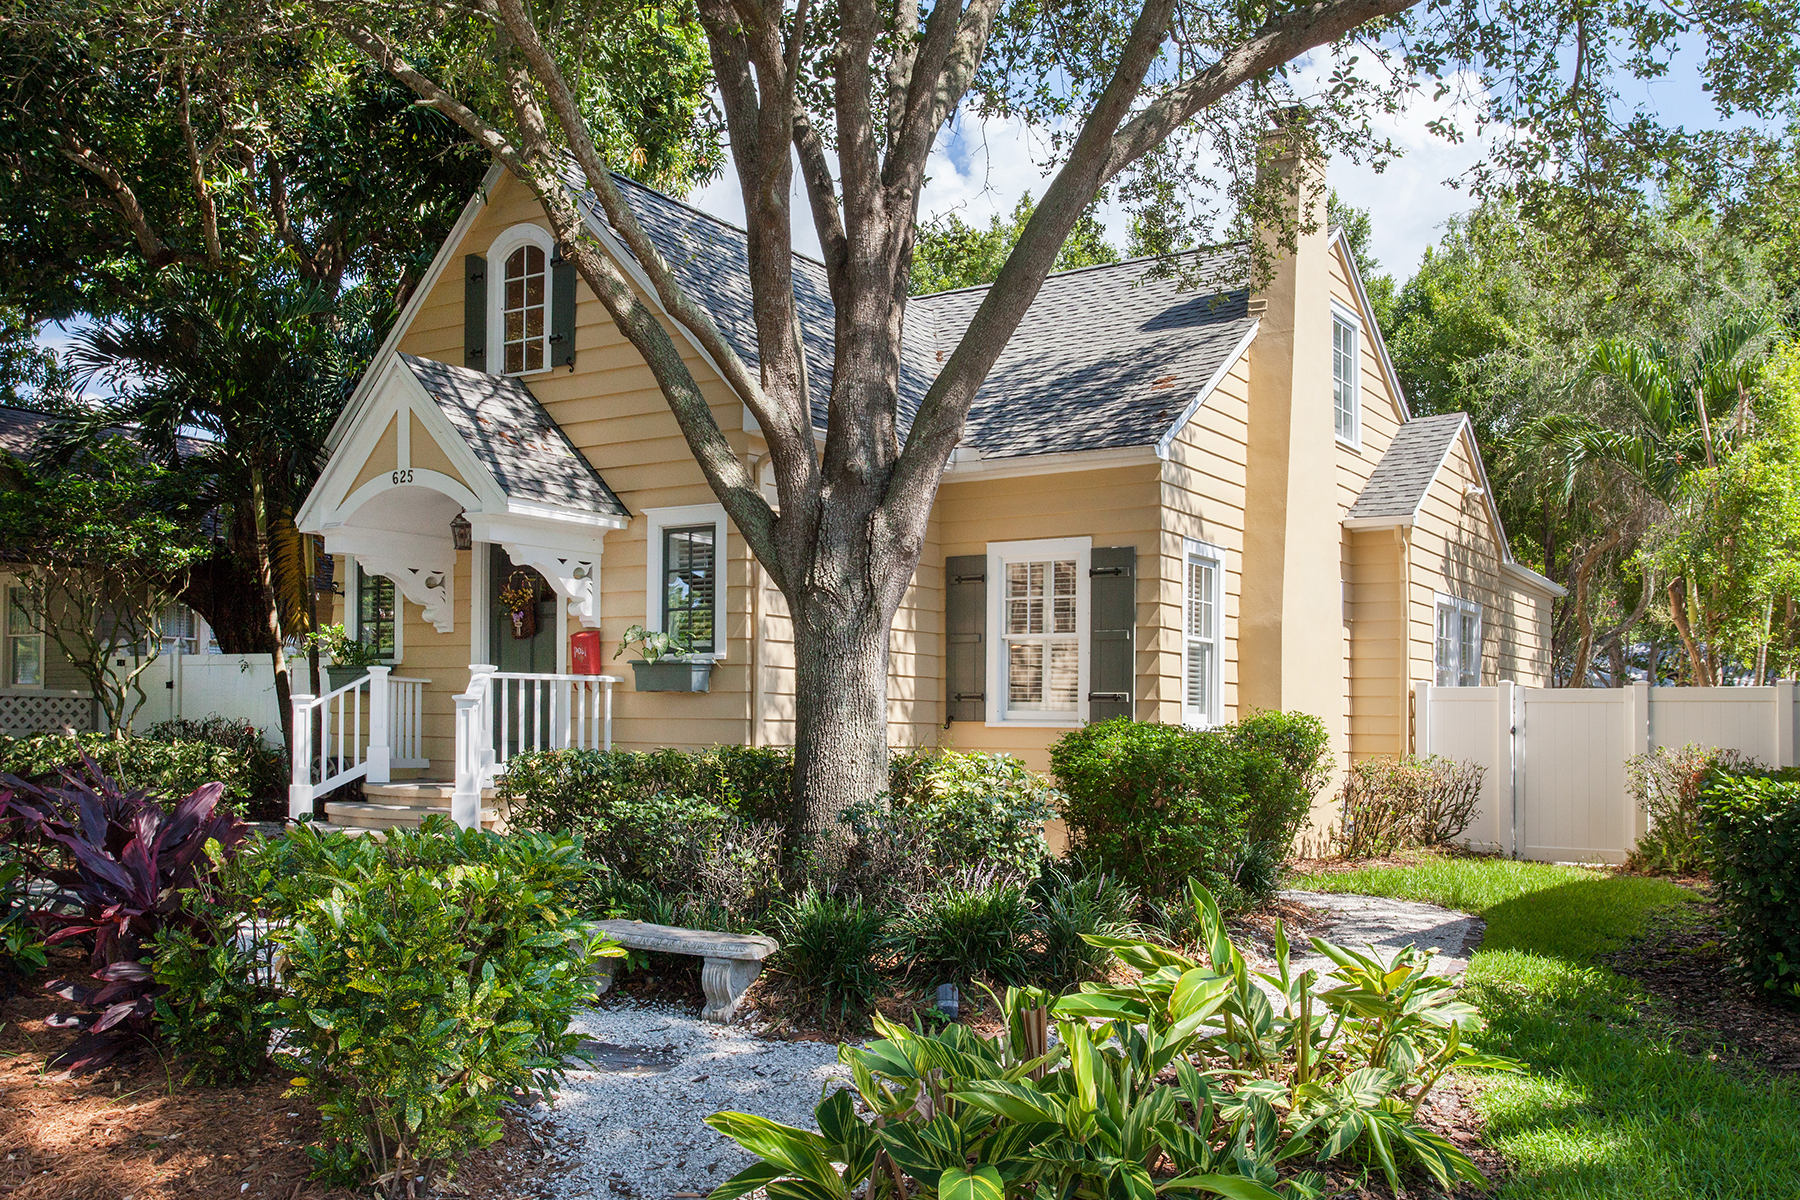 Single Family Home for Sale at OLD NORTHEAST 625 13th Ave NE St. Petersburg, Florida, 33701 United States